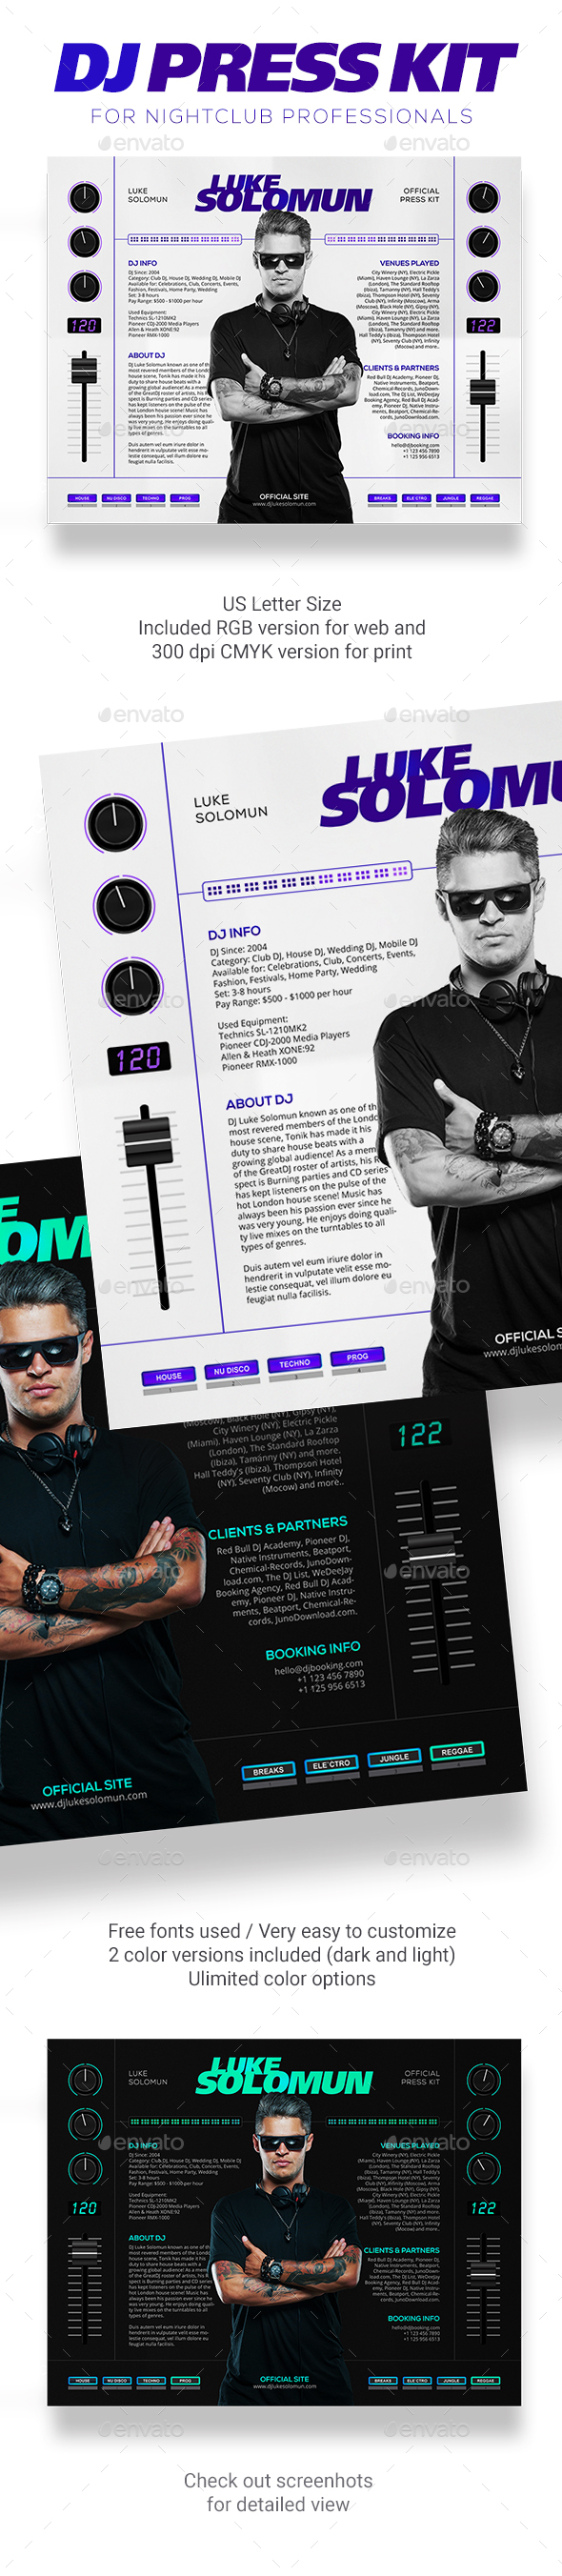 MaDJestik - DJ Press Kit / DJ Resume / DJ Rider PSD Template - Resumes Stationery